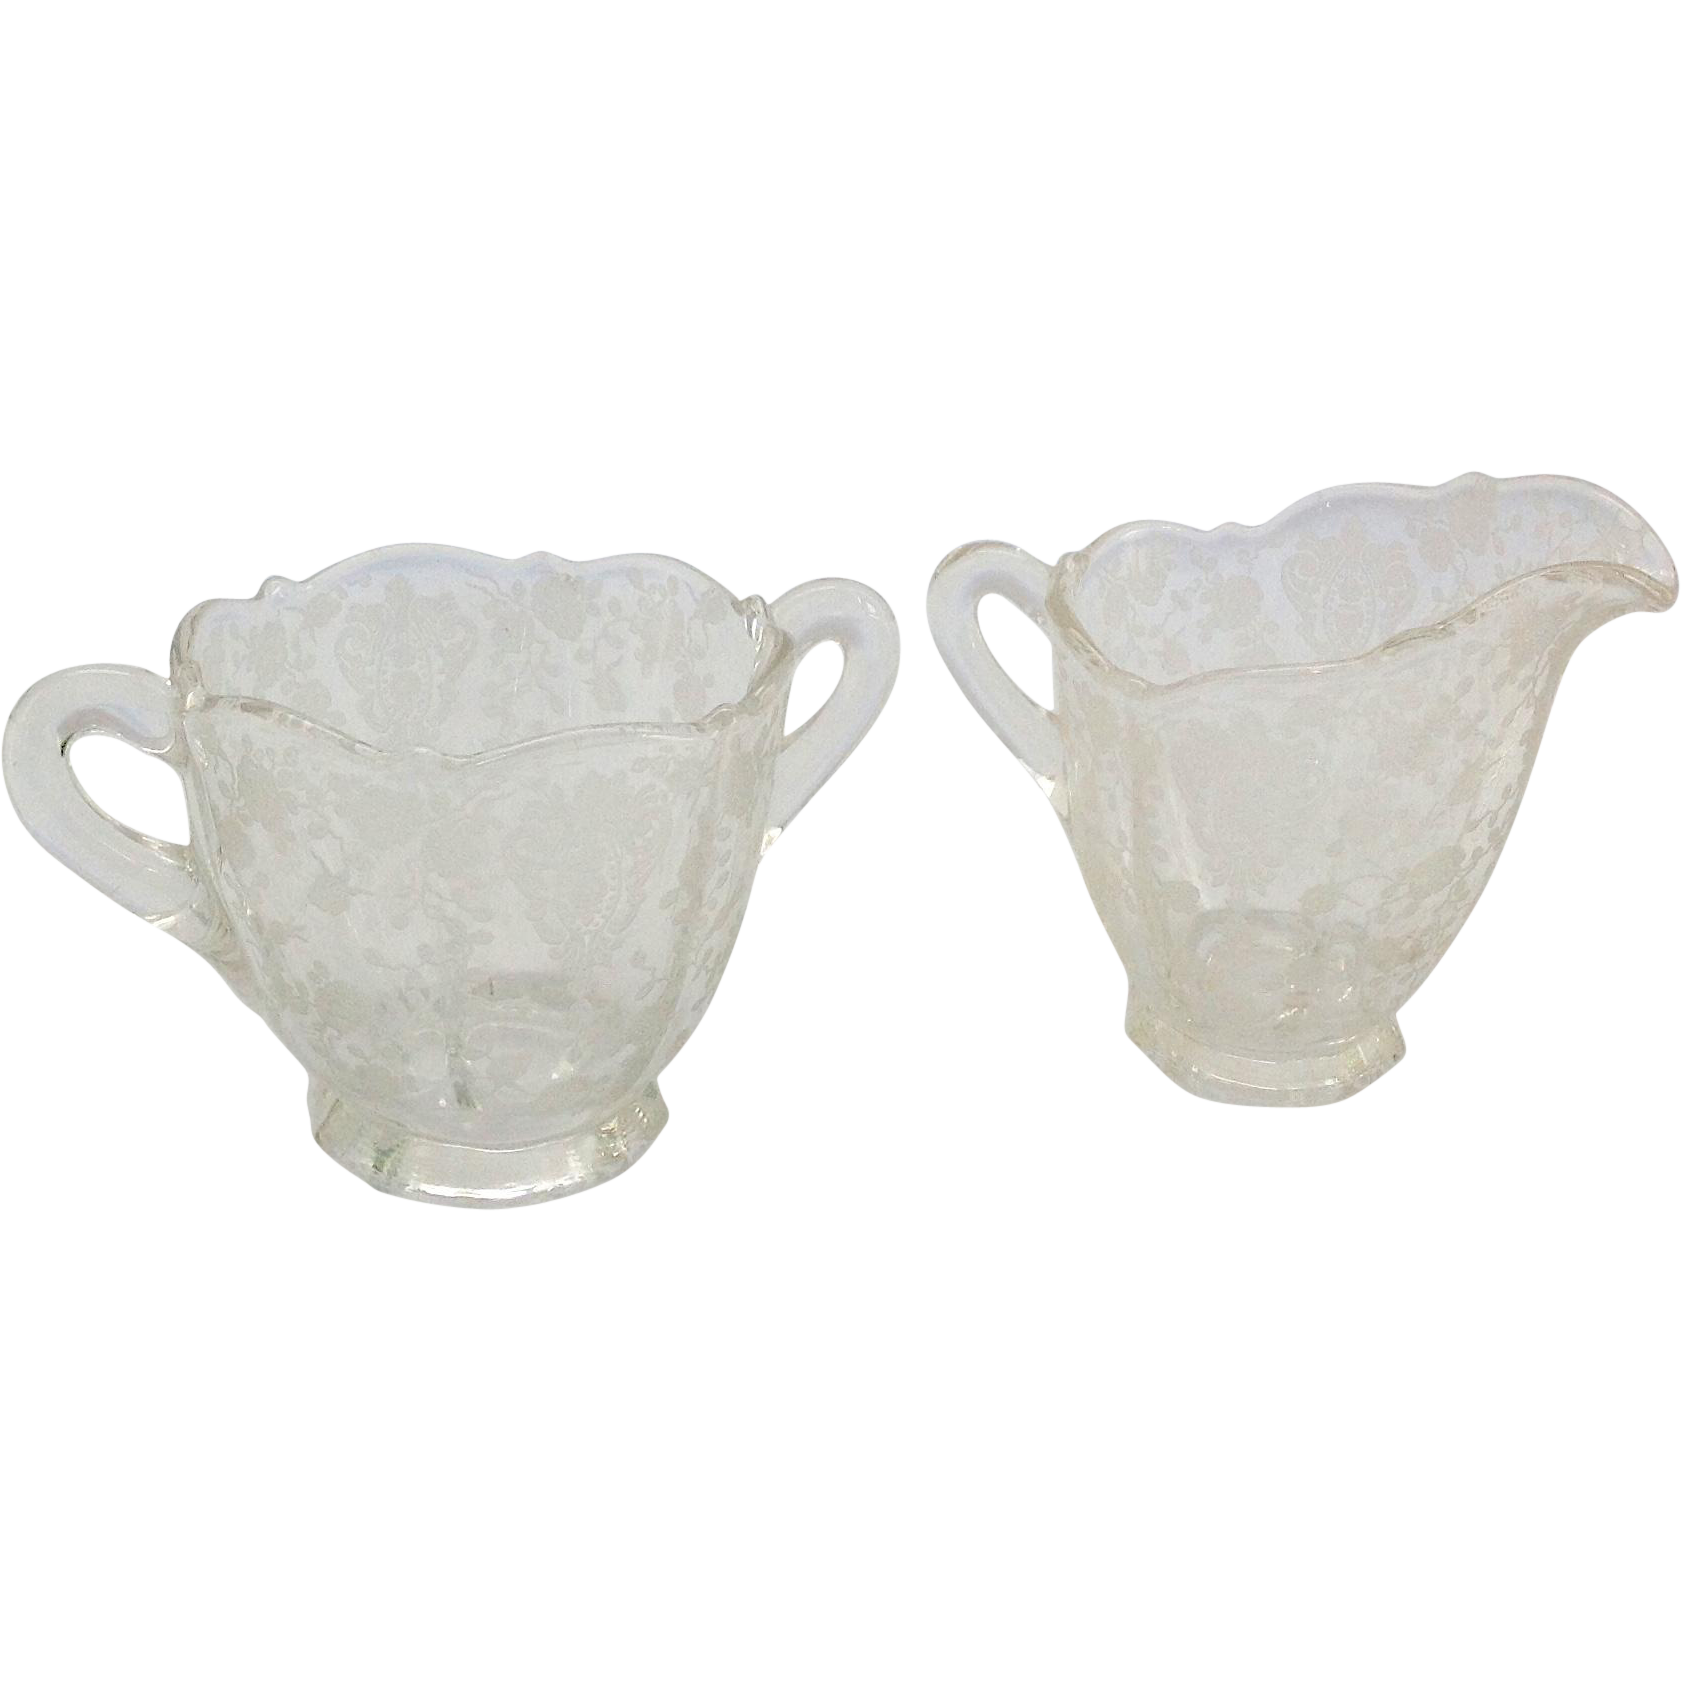 Cambridge Rose Point Elegant Glass Sugar and Creamer